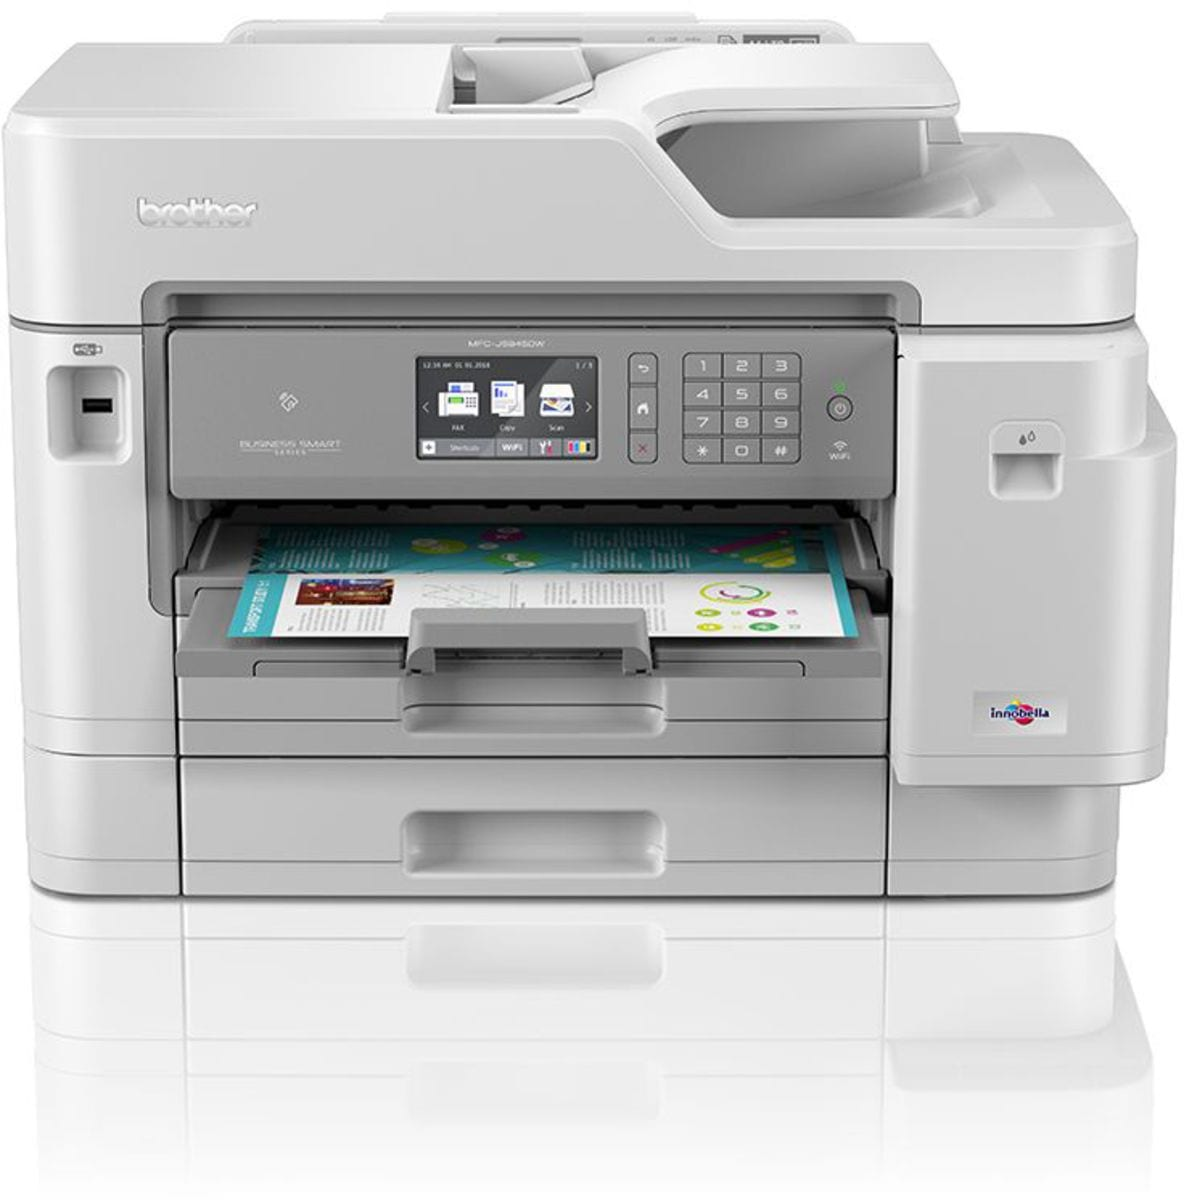 Tintenstrahl-Multifunktionsdrucker »MFC-J5945DW 4in1 DIN A3...